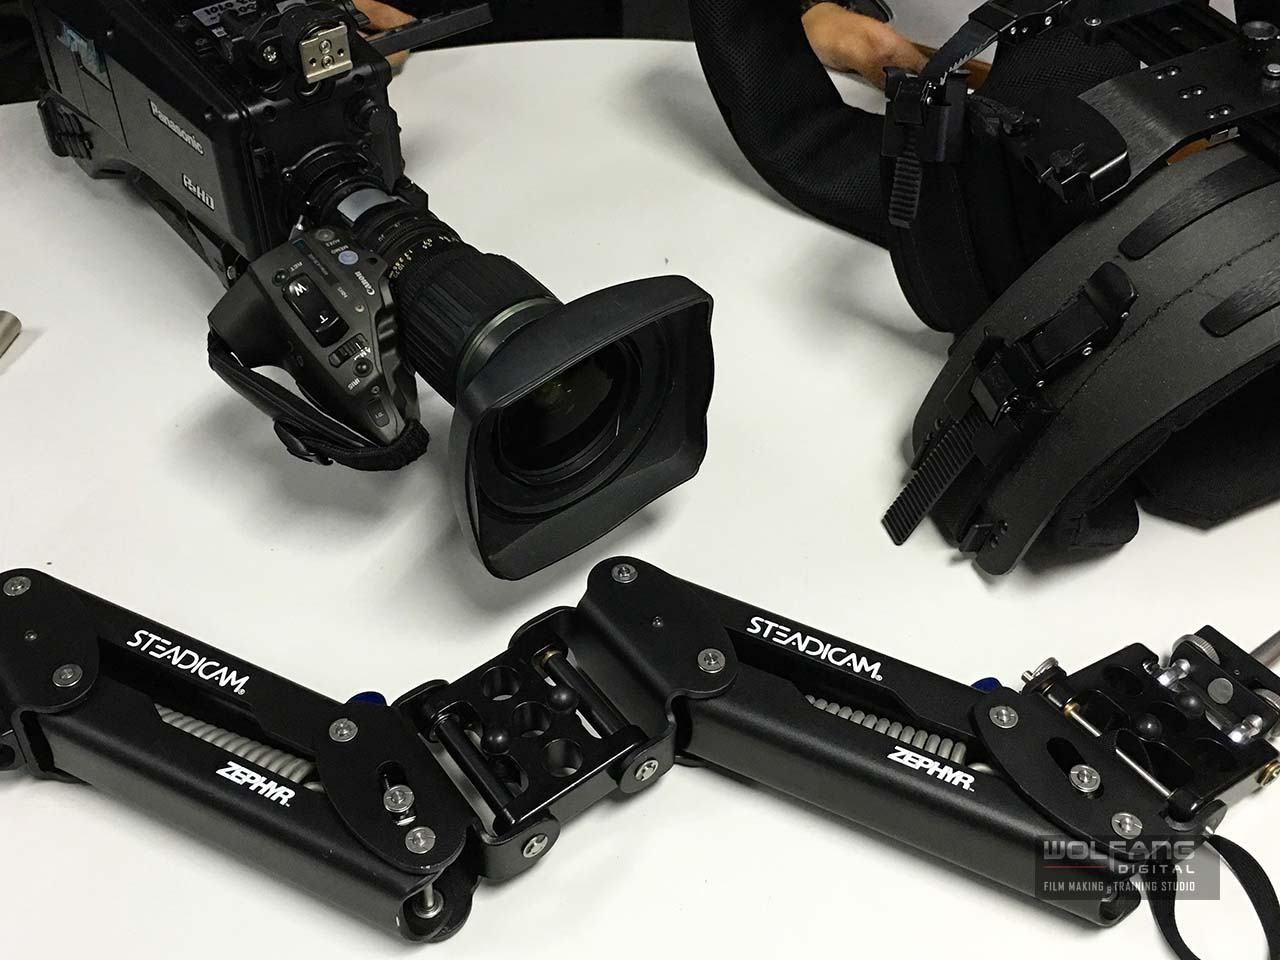 Get close and personal with every Steadicam gear and get good with it